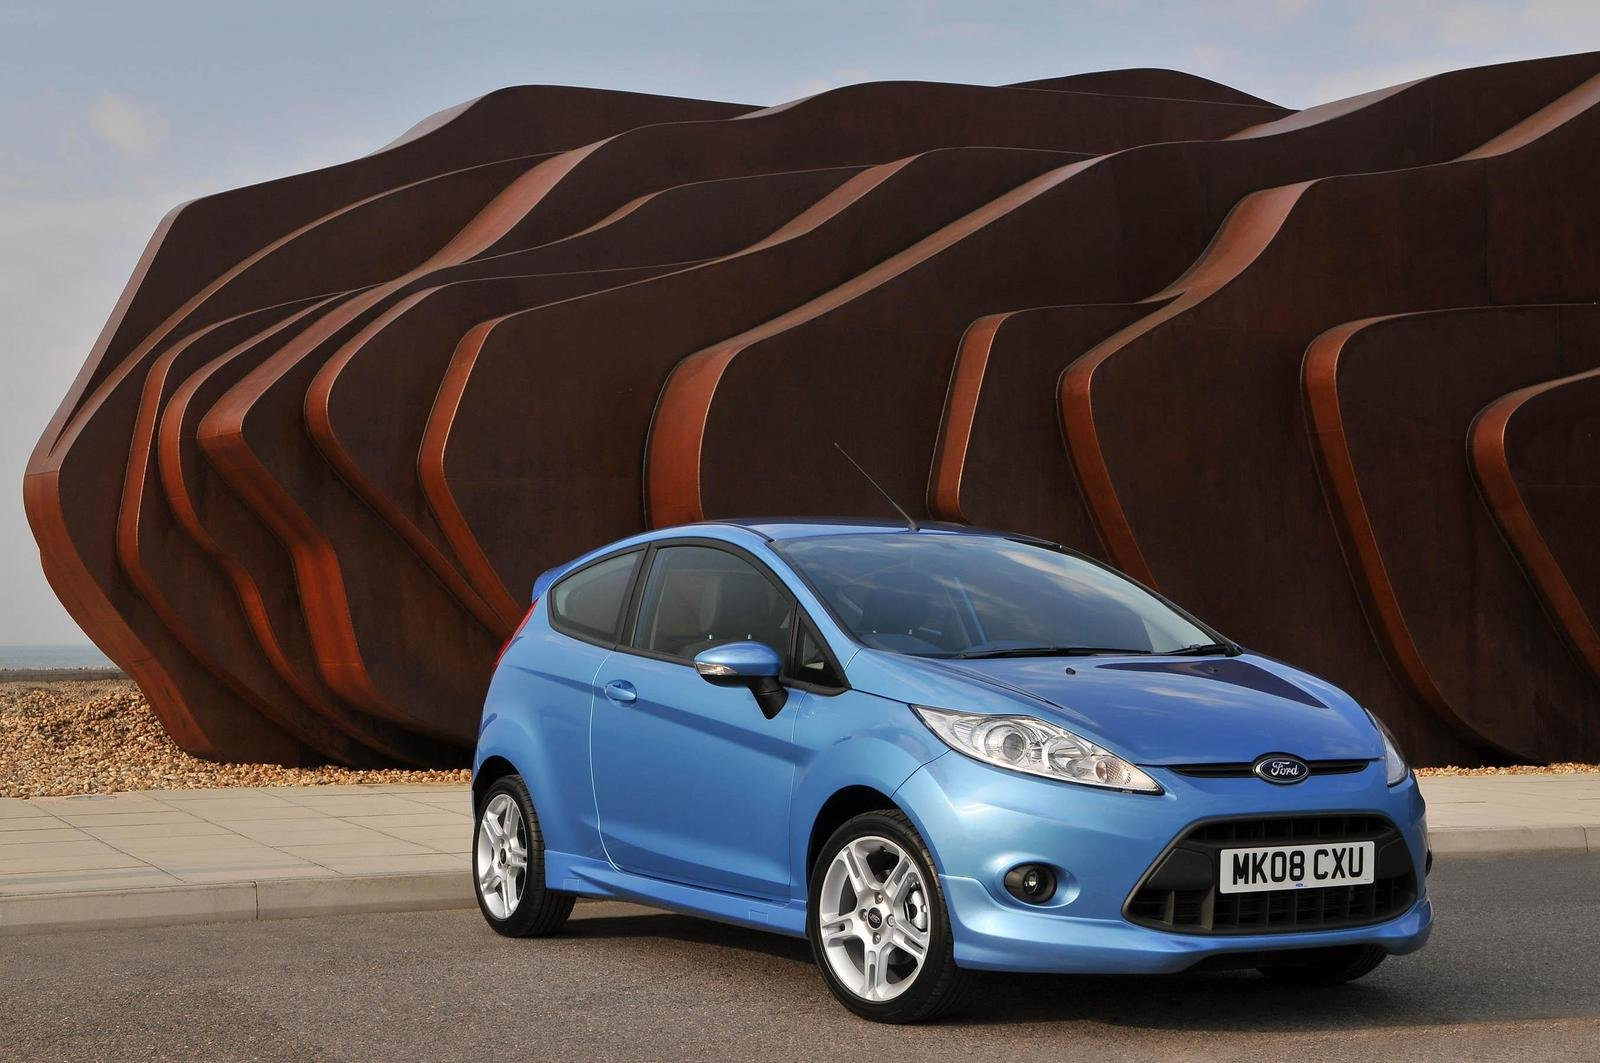 2009 ford fiesta picture 283010 car review top speed. Black Bedroom Furniture Sets. Home Design Ideas